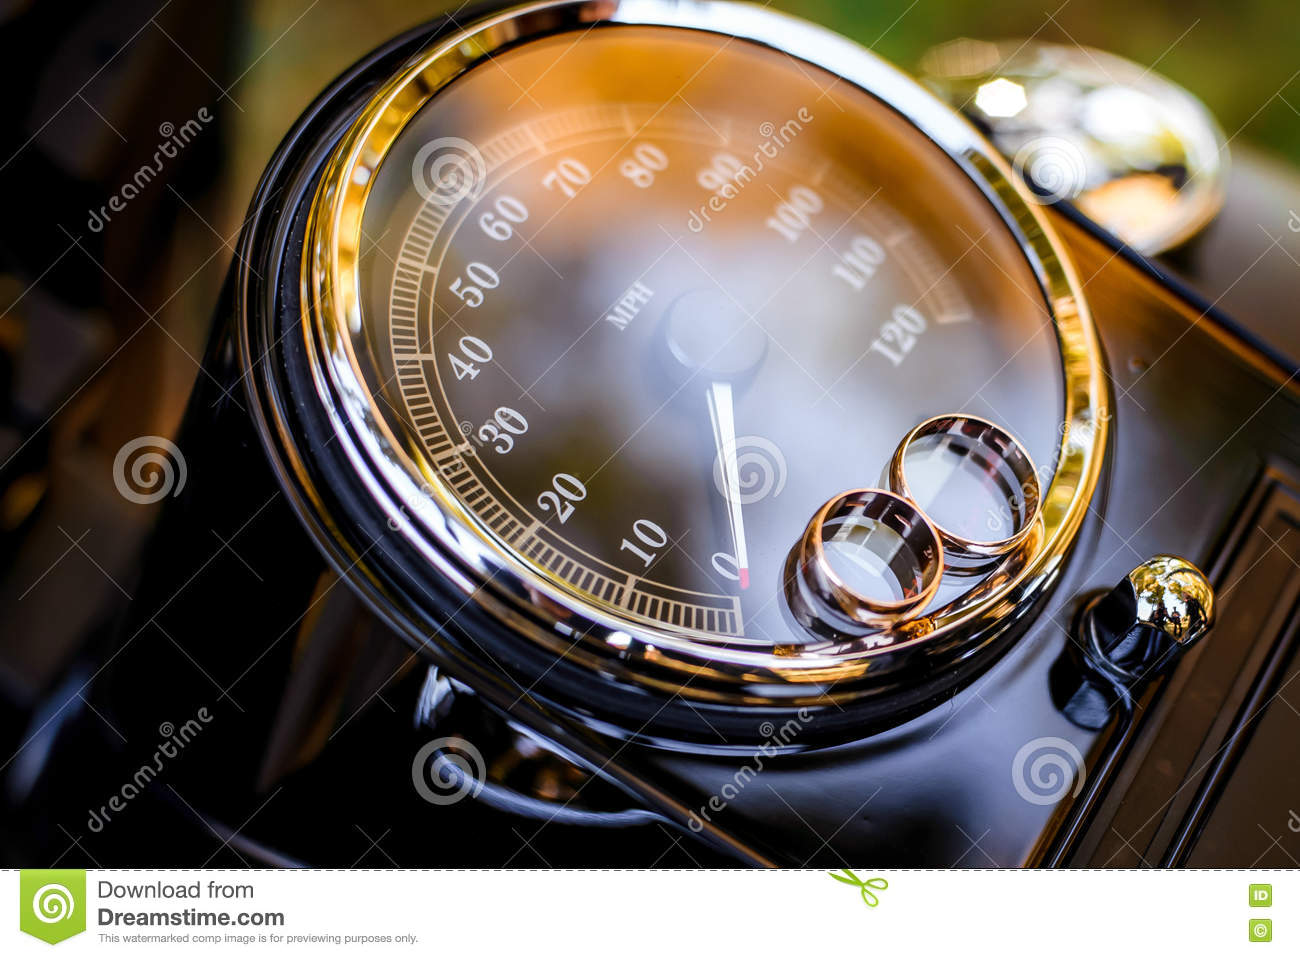 Wedding Rings On A Motorcycle Speedometer Stock Image Image Of